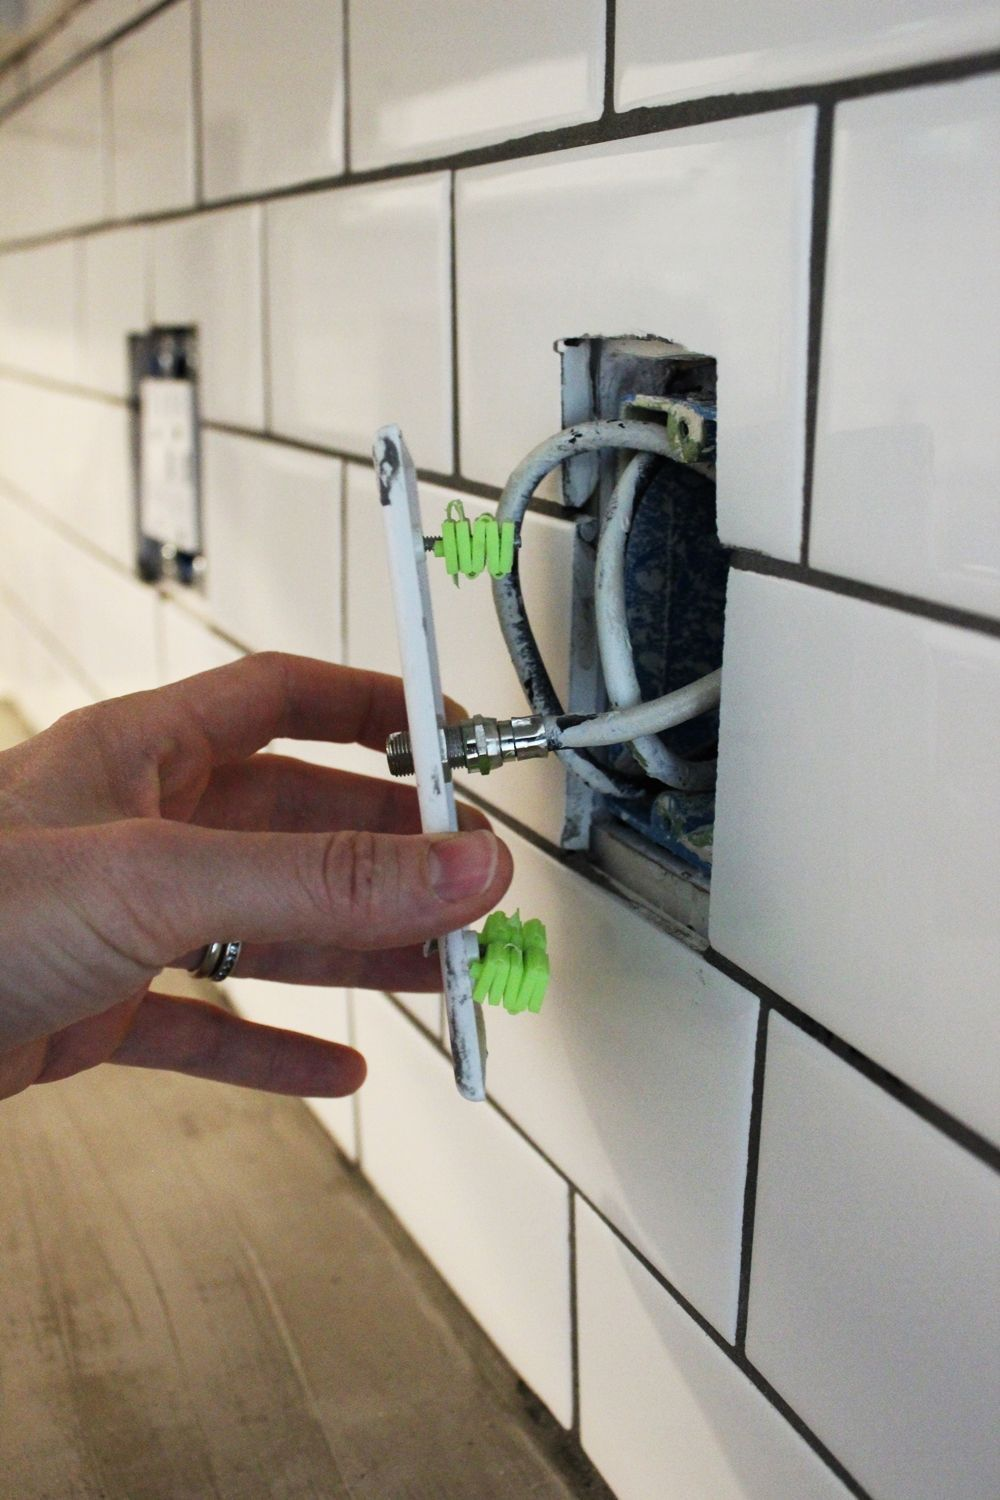 How To Install A Subway Tile Kitchen Backsplash Home Crafts Diy